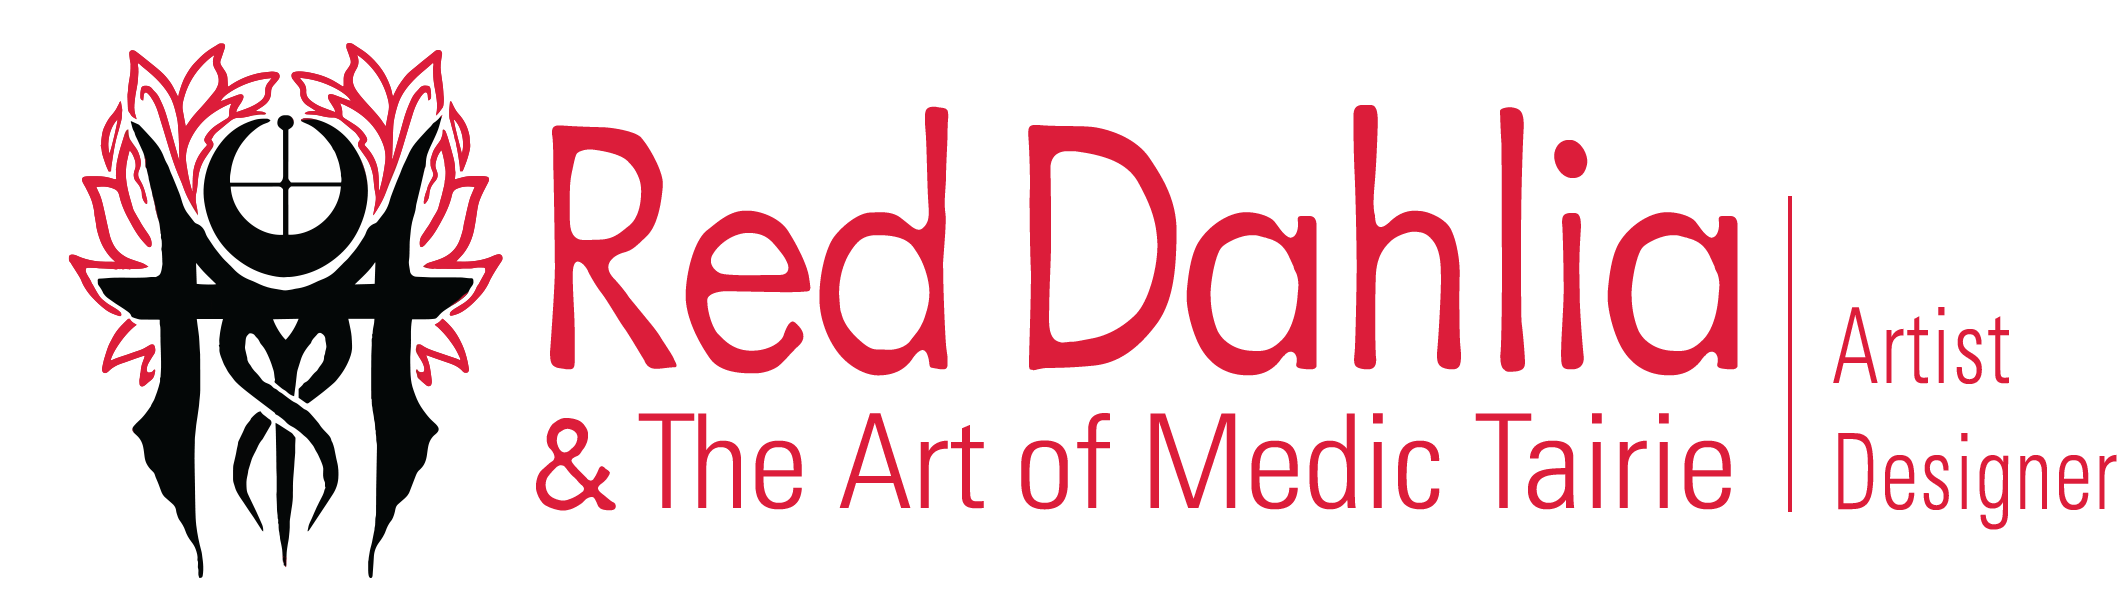 Red Dahlia & The Art of Medic Tairie